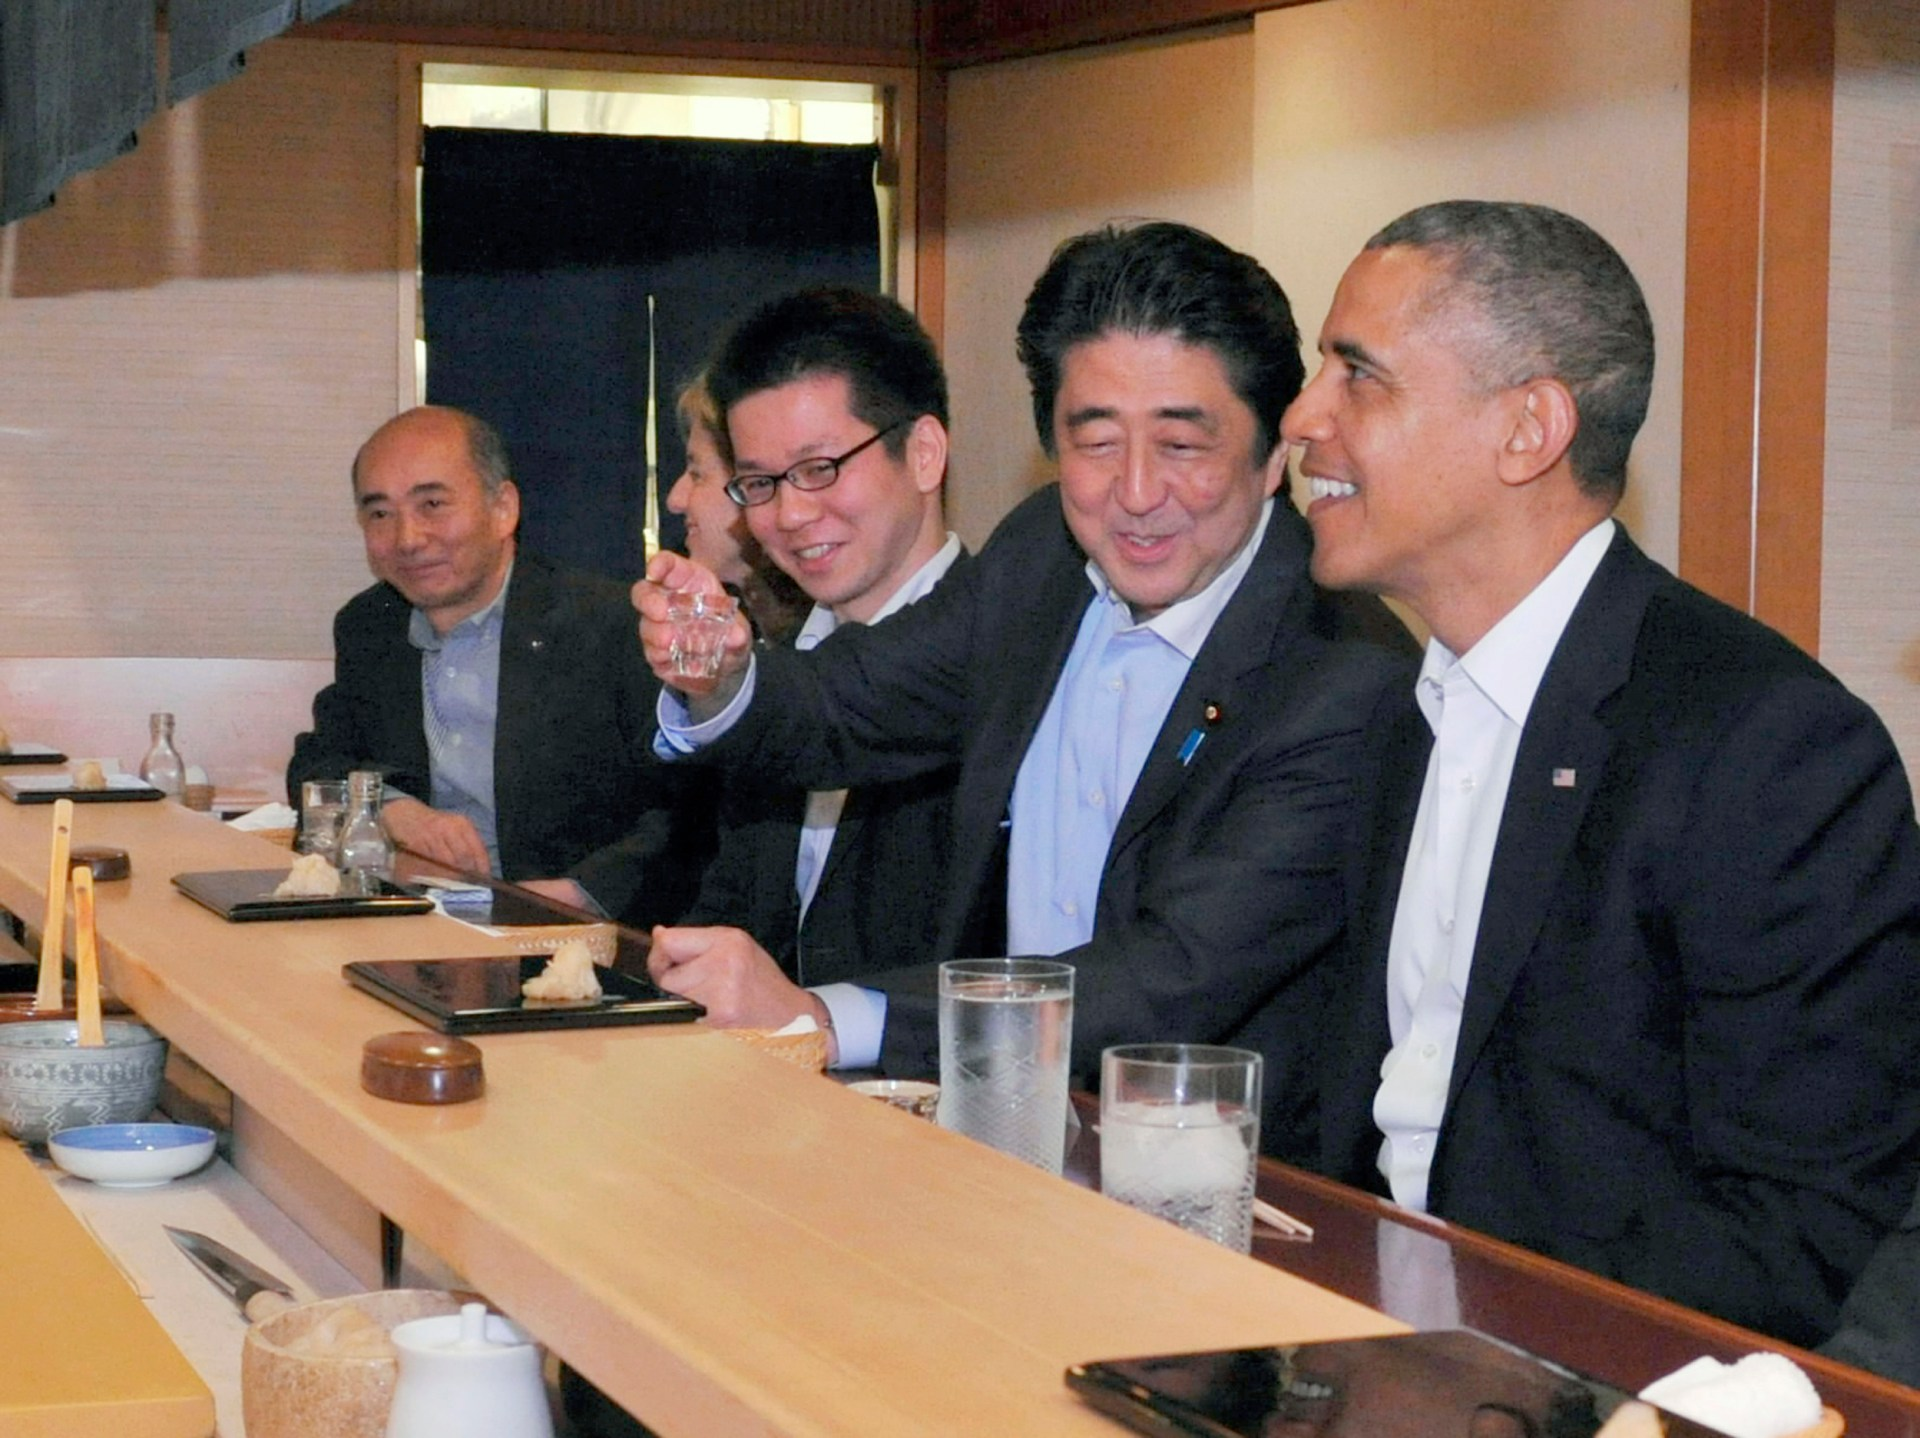 Reuters – Japanese Prime Minister Shinzo Abe (2nd R) shares a laugh with U.S. President Barack Obama (R) as they have dinner at the Sukiyabashi Jiro sushi restaurant in Tokyo, in this picture taken April 23, 2014.